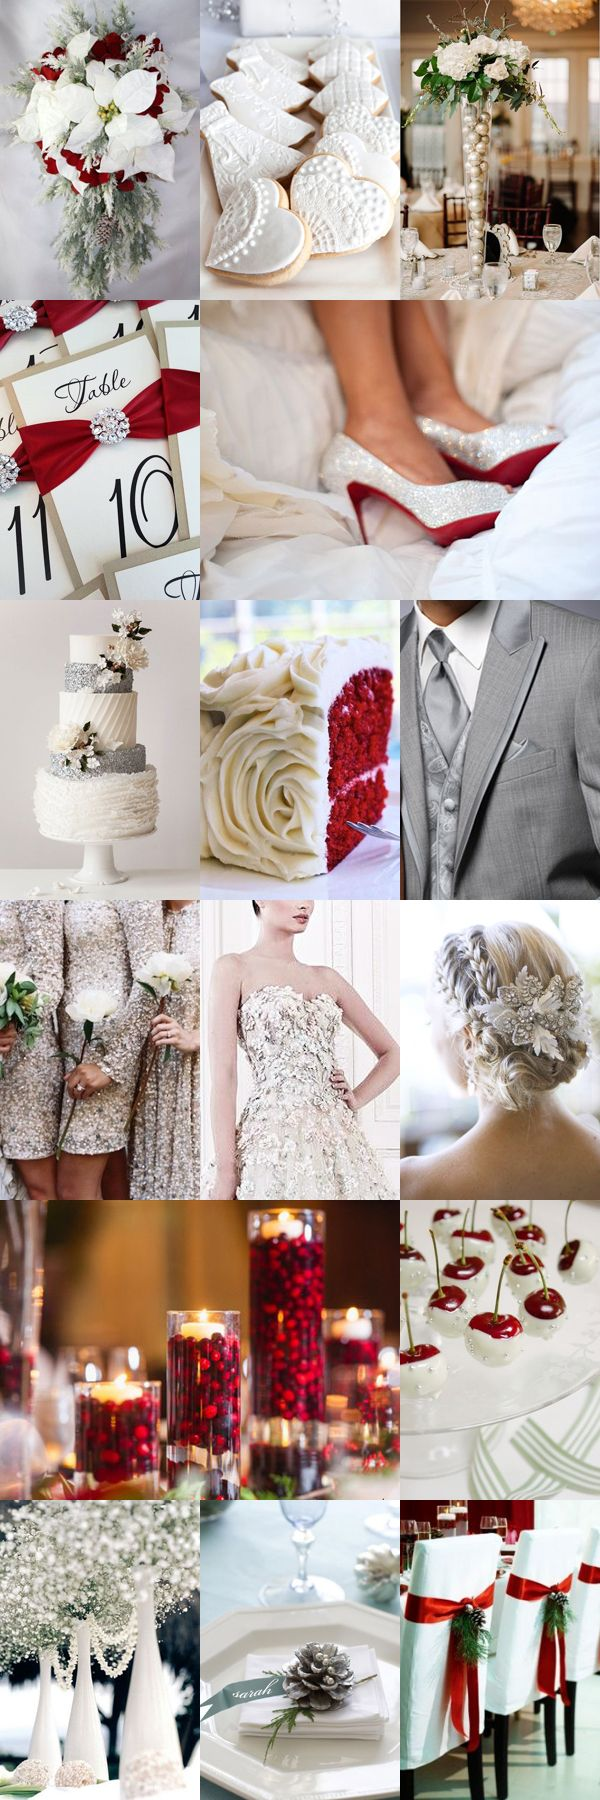 Festive Christmas Wedding Inspiration Board                                                                                                                                                                                 More